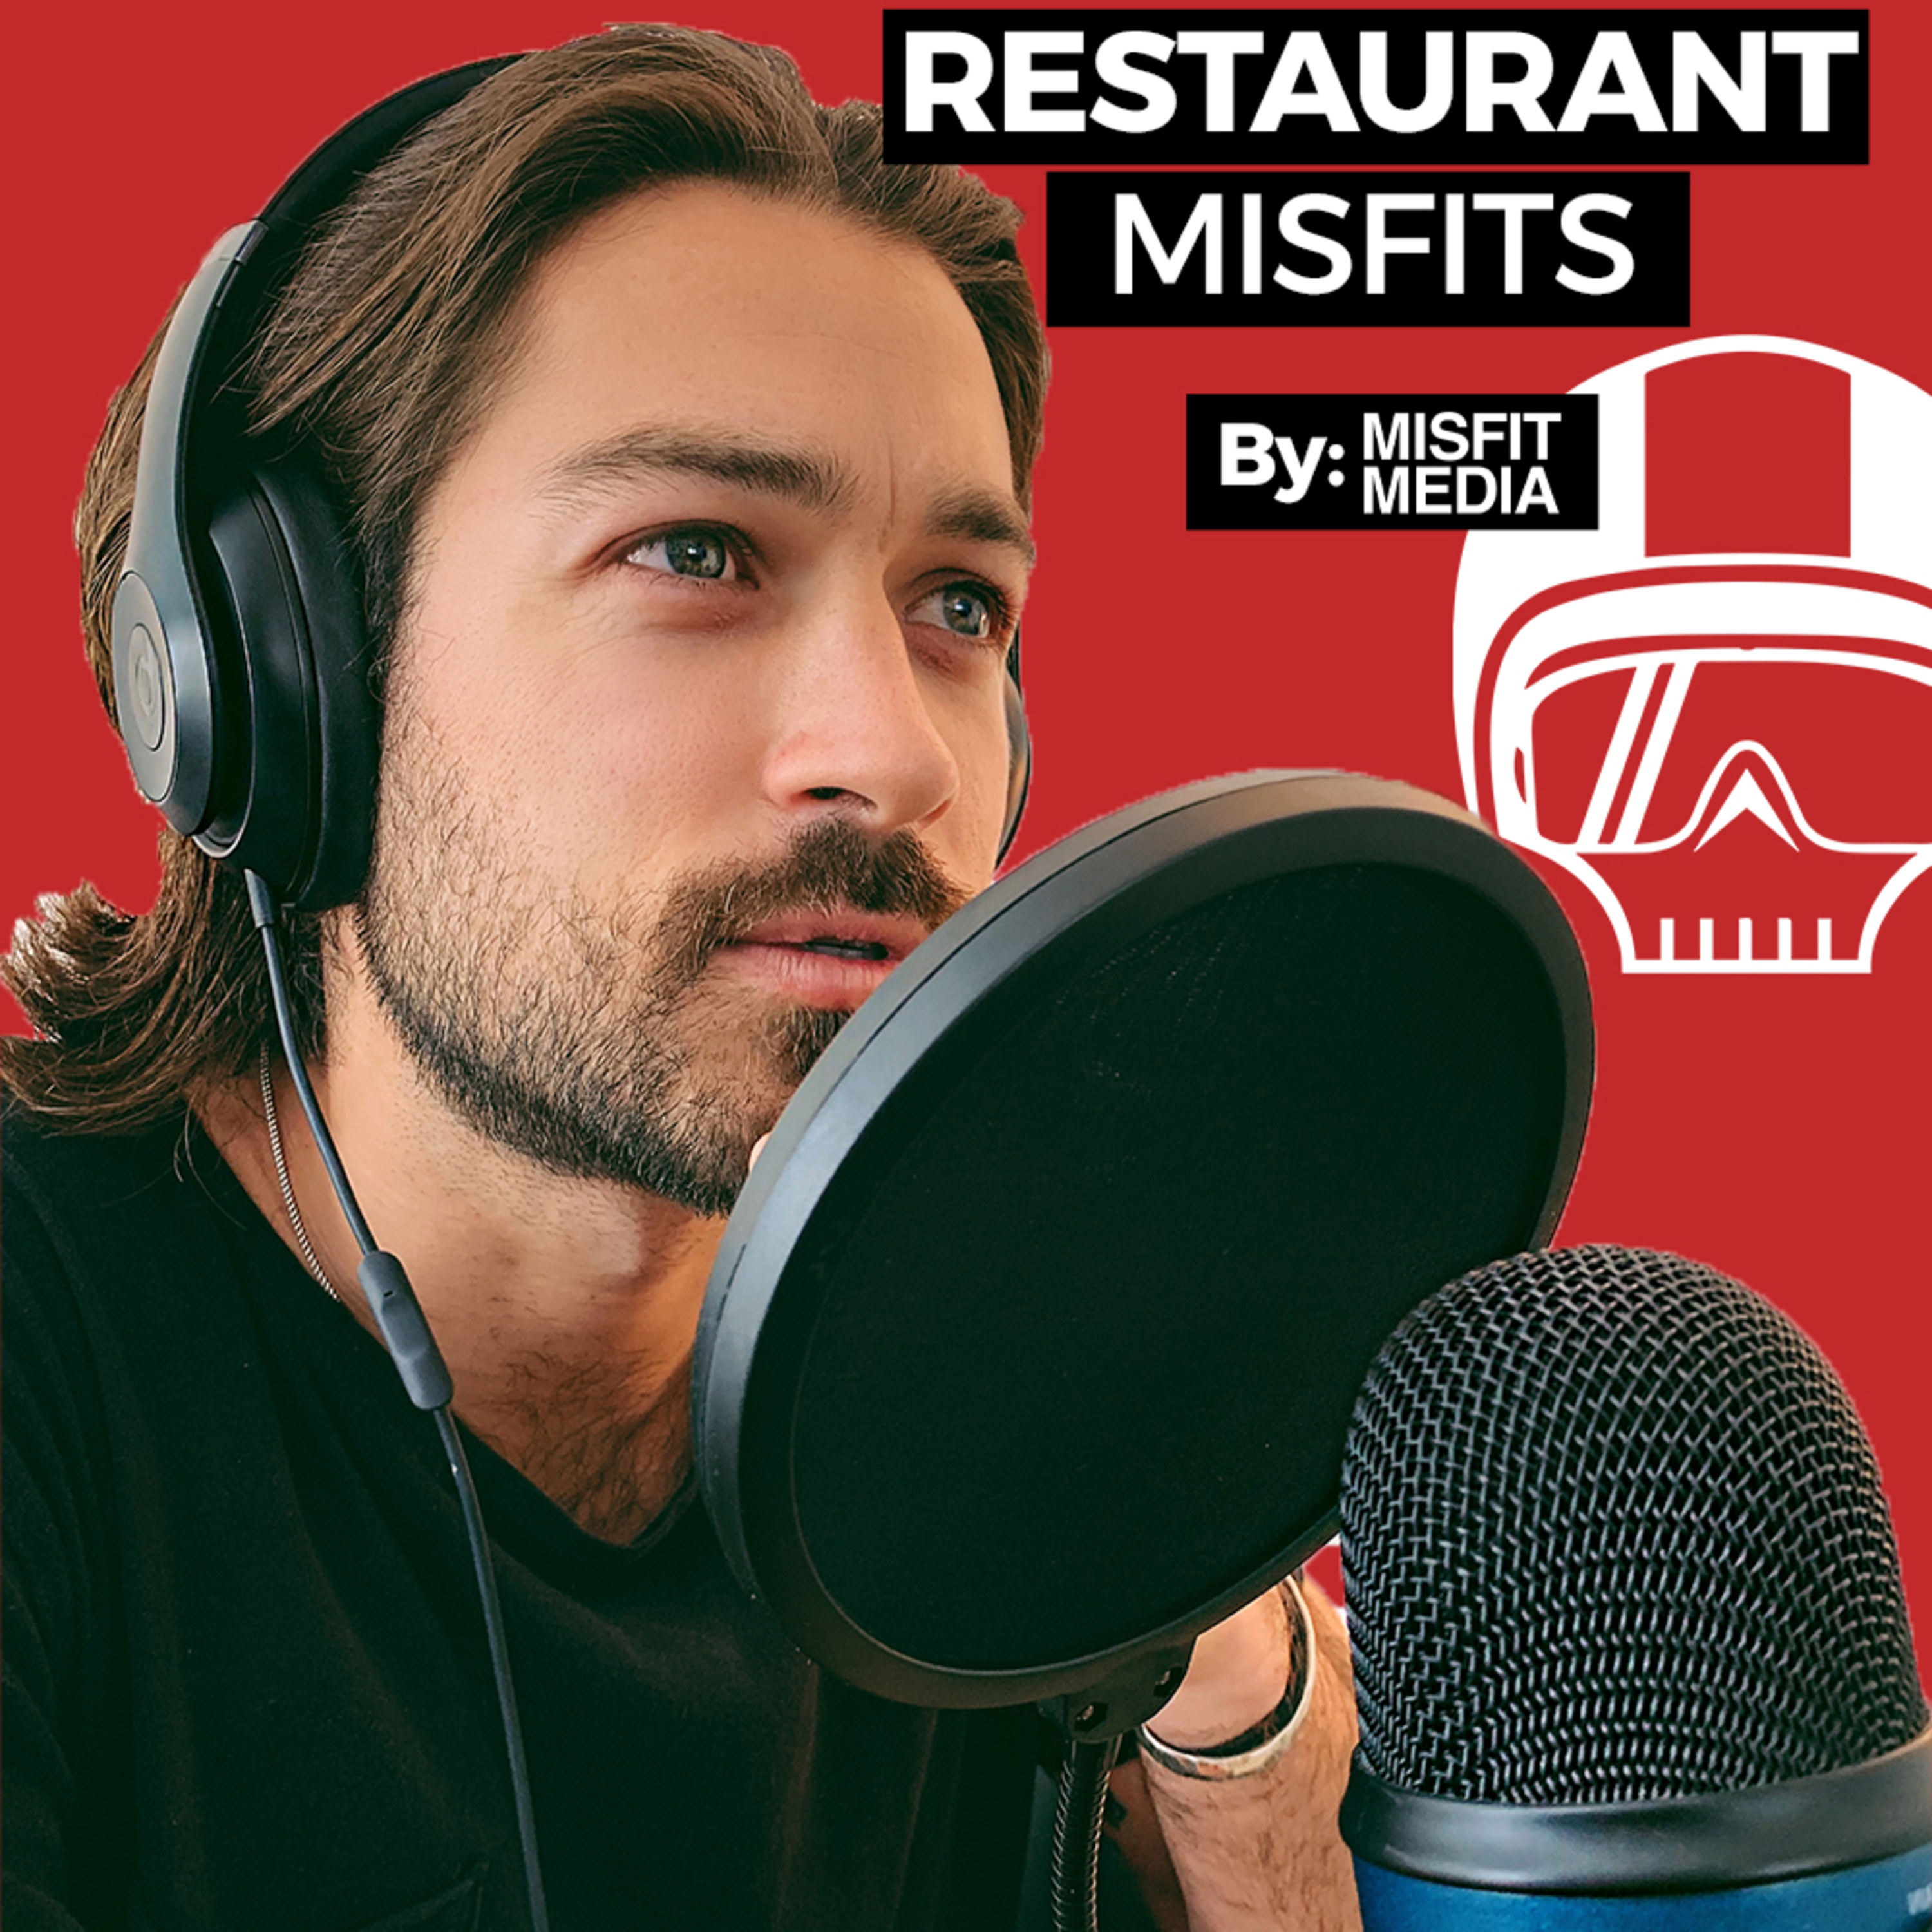 EP15 - Customer Behaviors We Are Seeing Around Takeout/Delivery & Dine-In